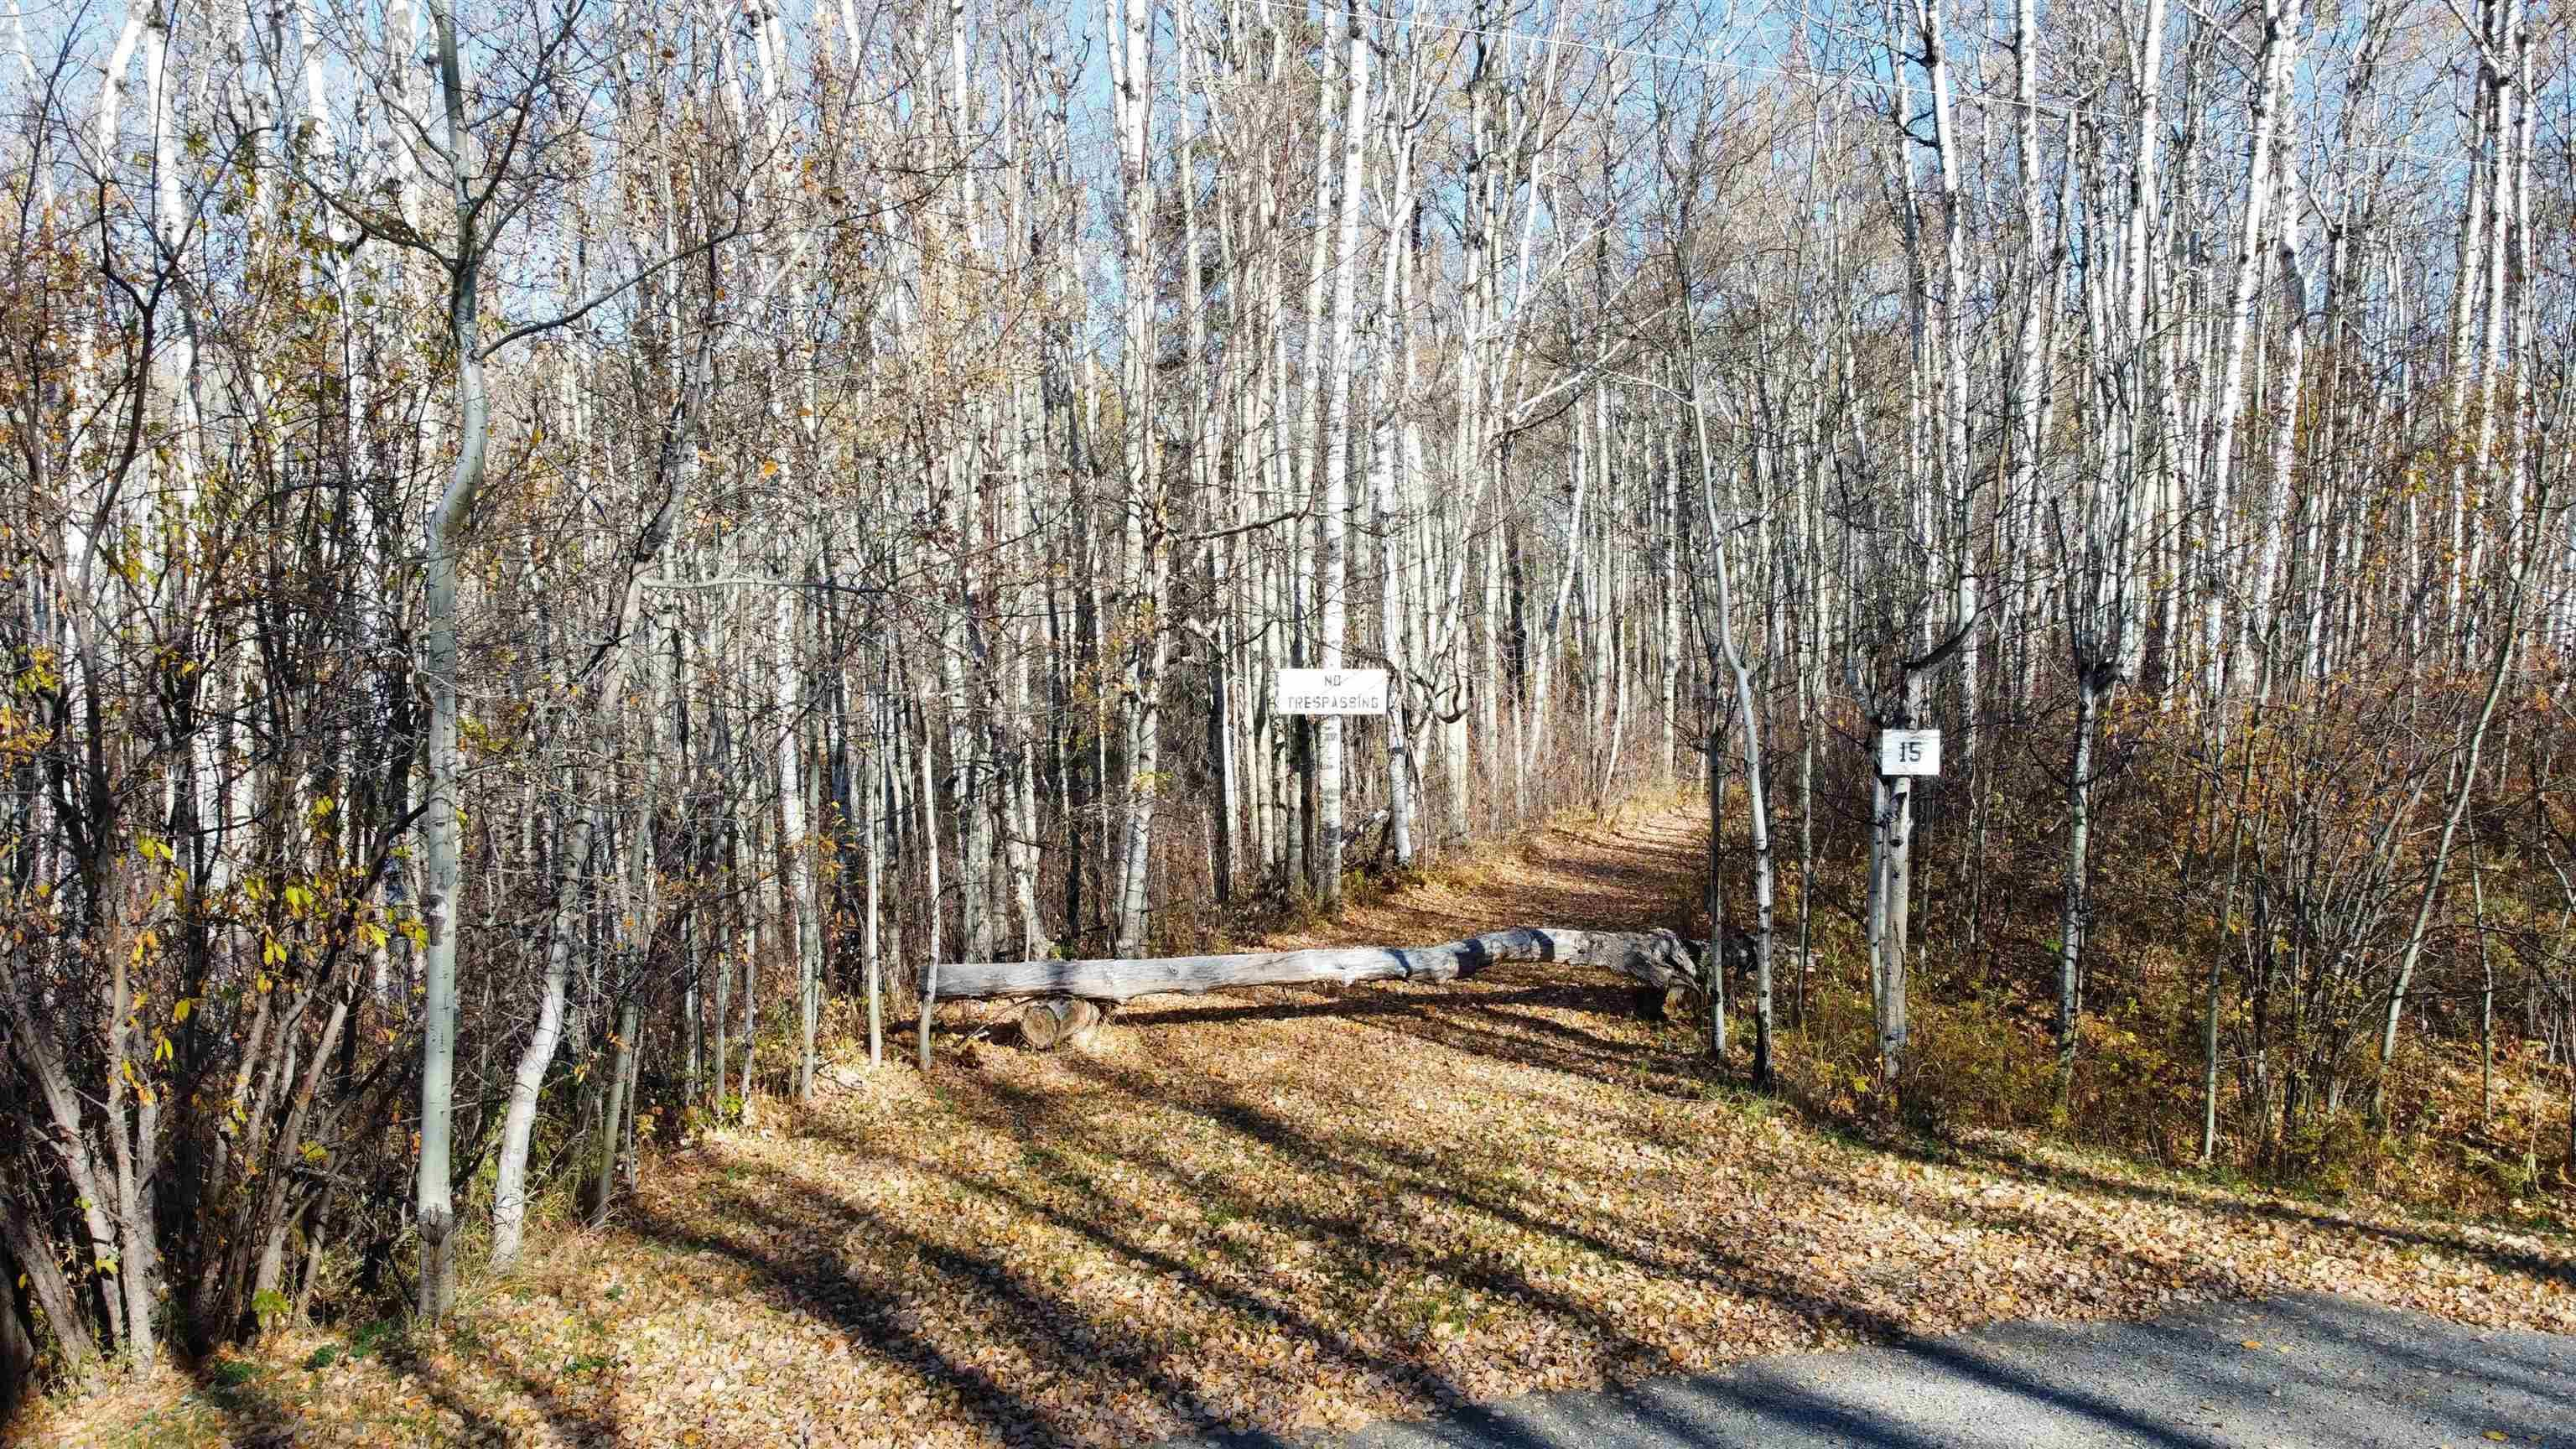 Main Photo: 15 54023 RGE RD 280: Rural Parkland County Rural Land/Vacant Lot for sale : MLS®# E4266505